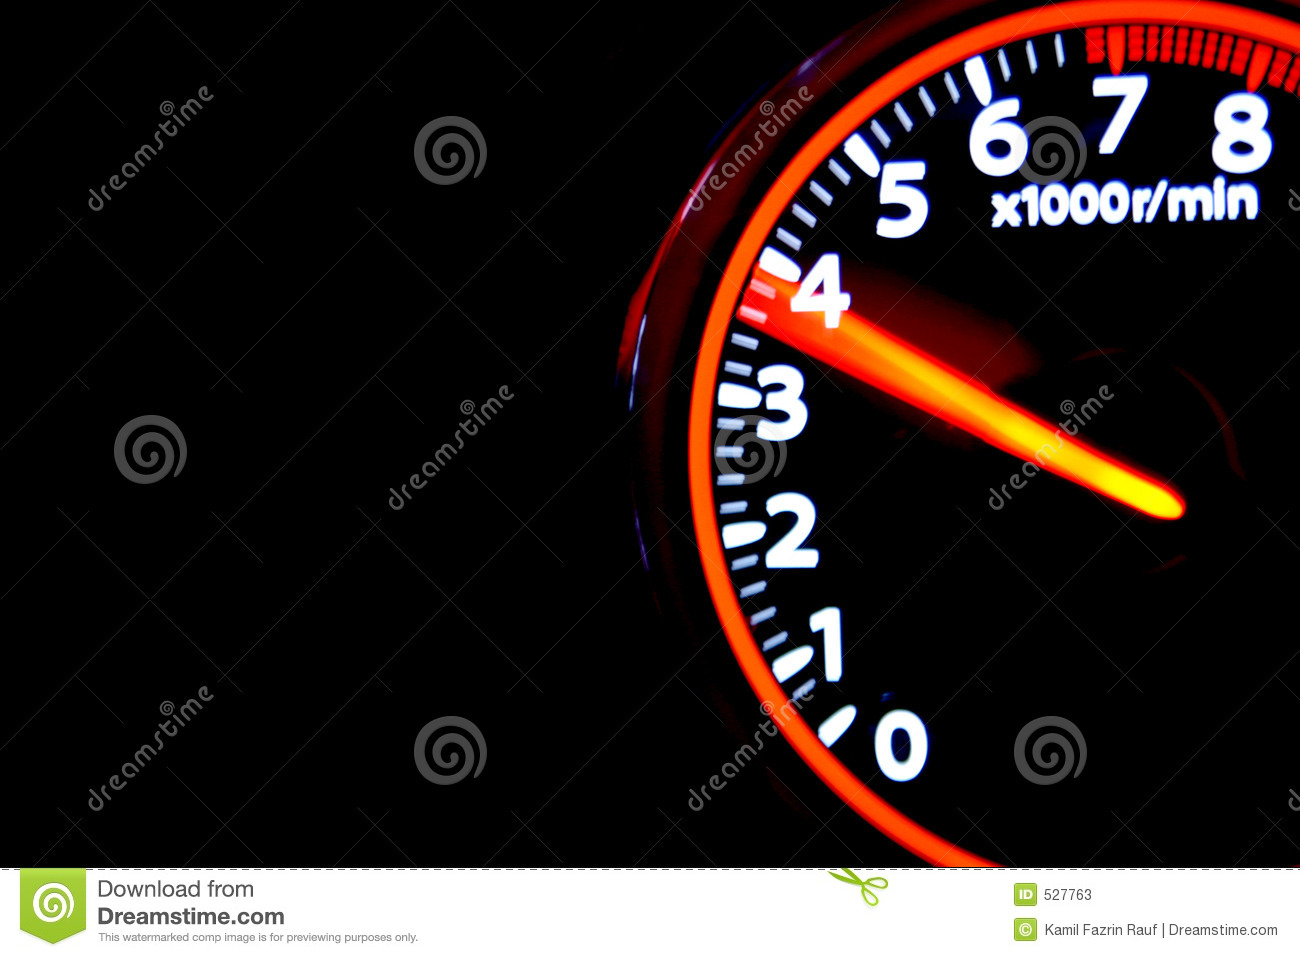 Race Car Wallpaper 1080p Rpm Meter Stock Photos Image 527763